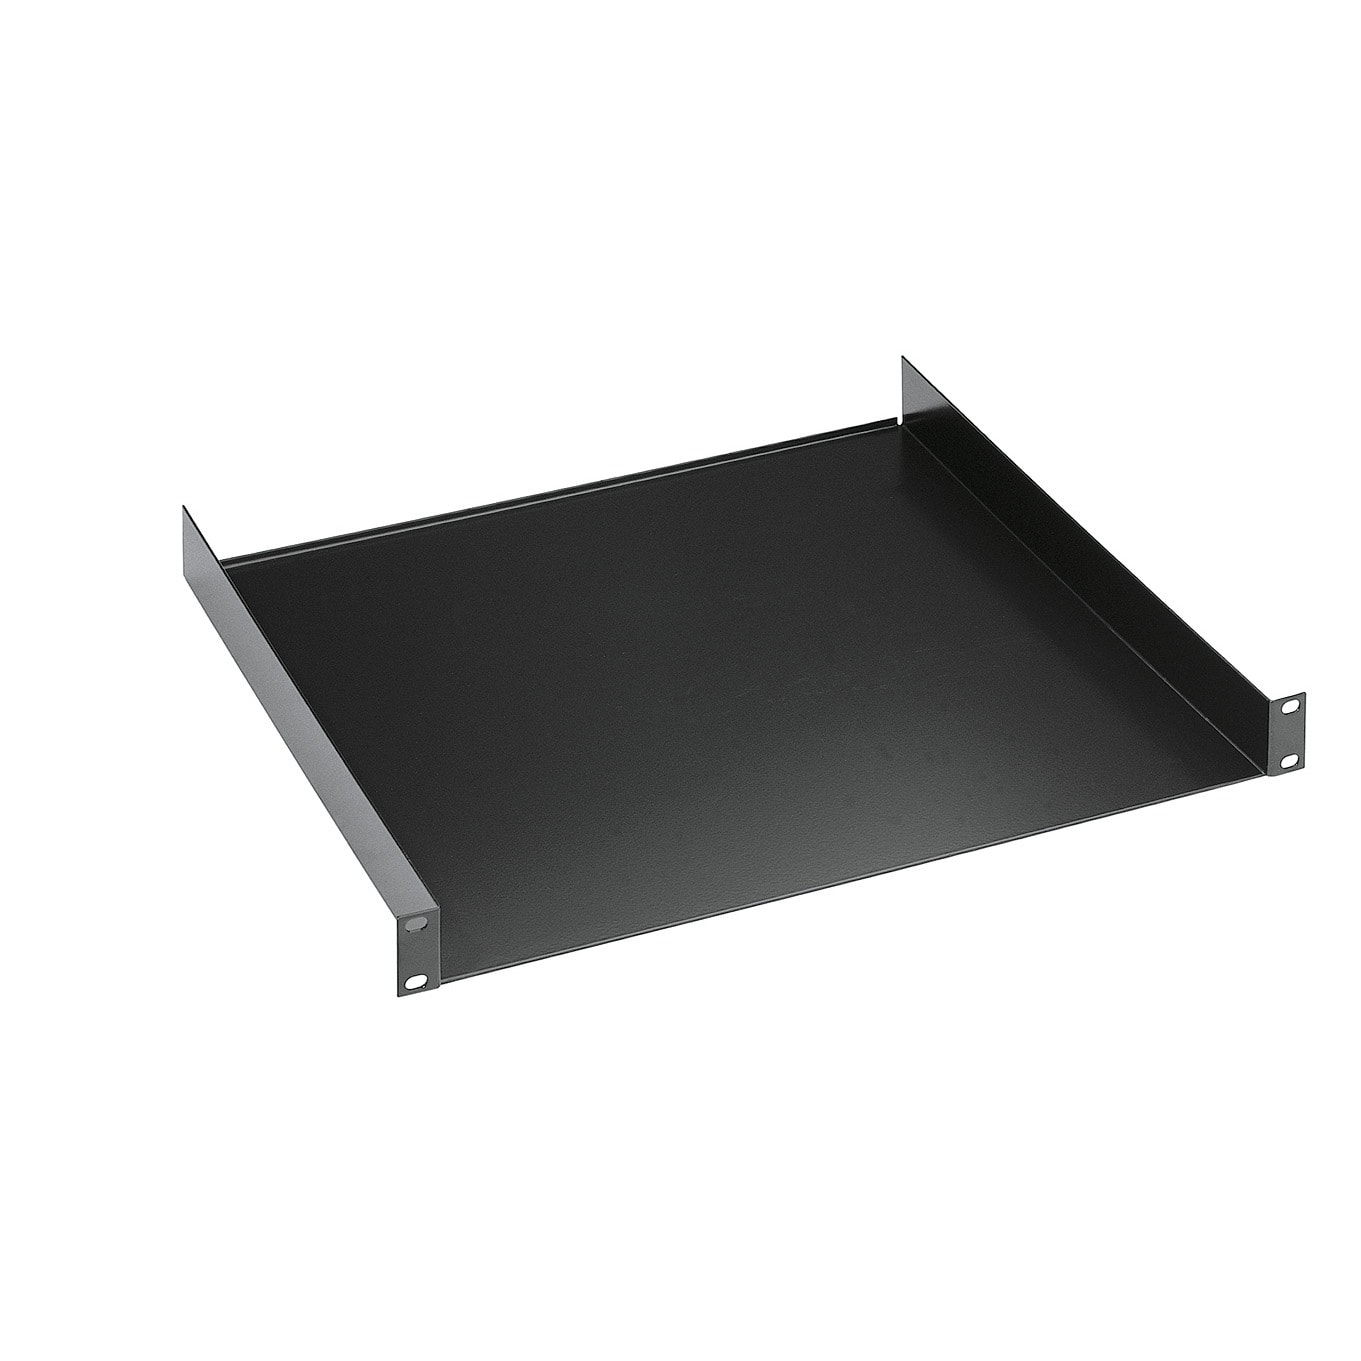 "KM28483 - 19"" rack shelf"